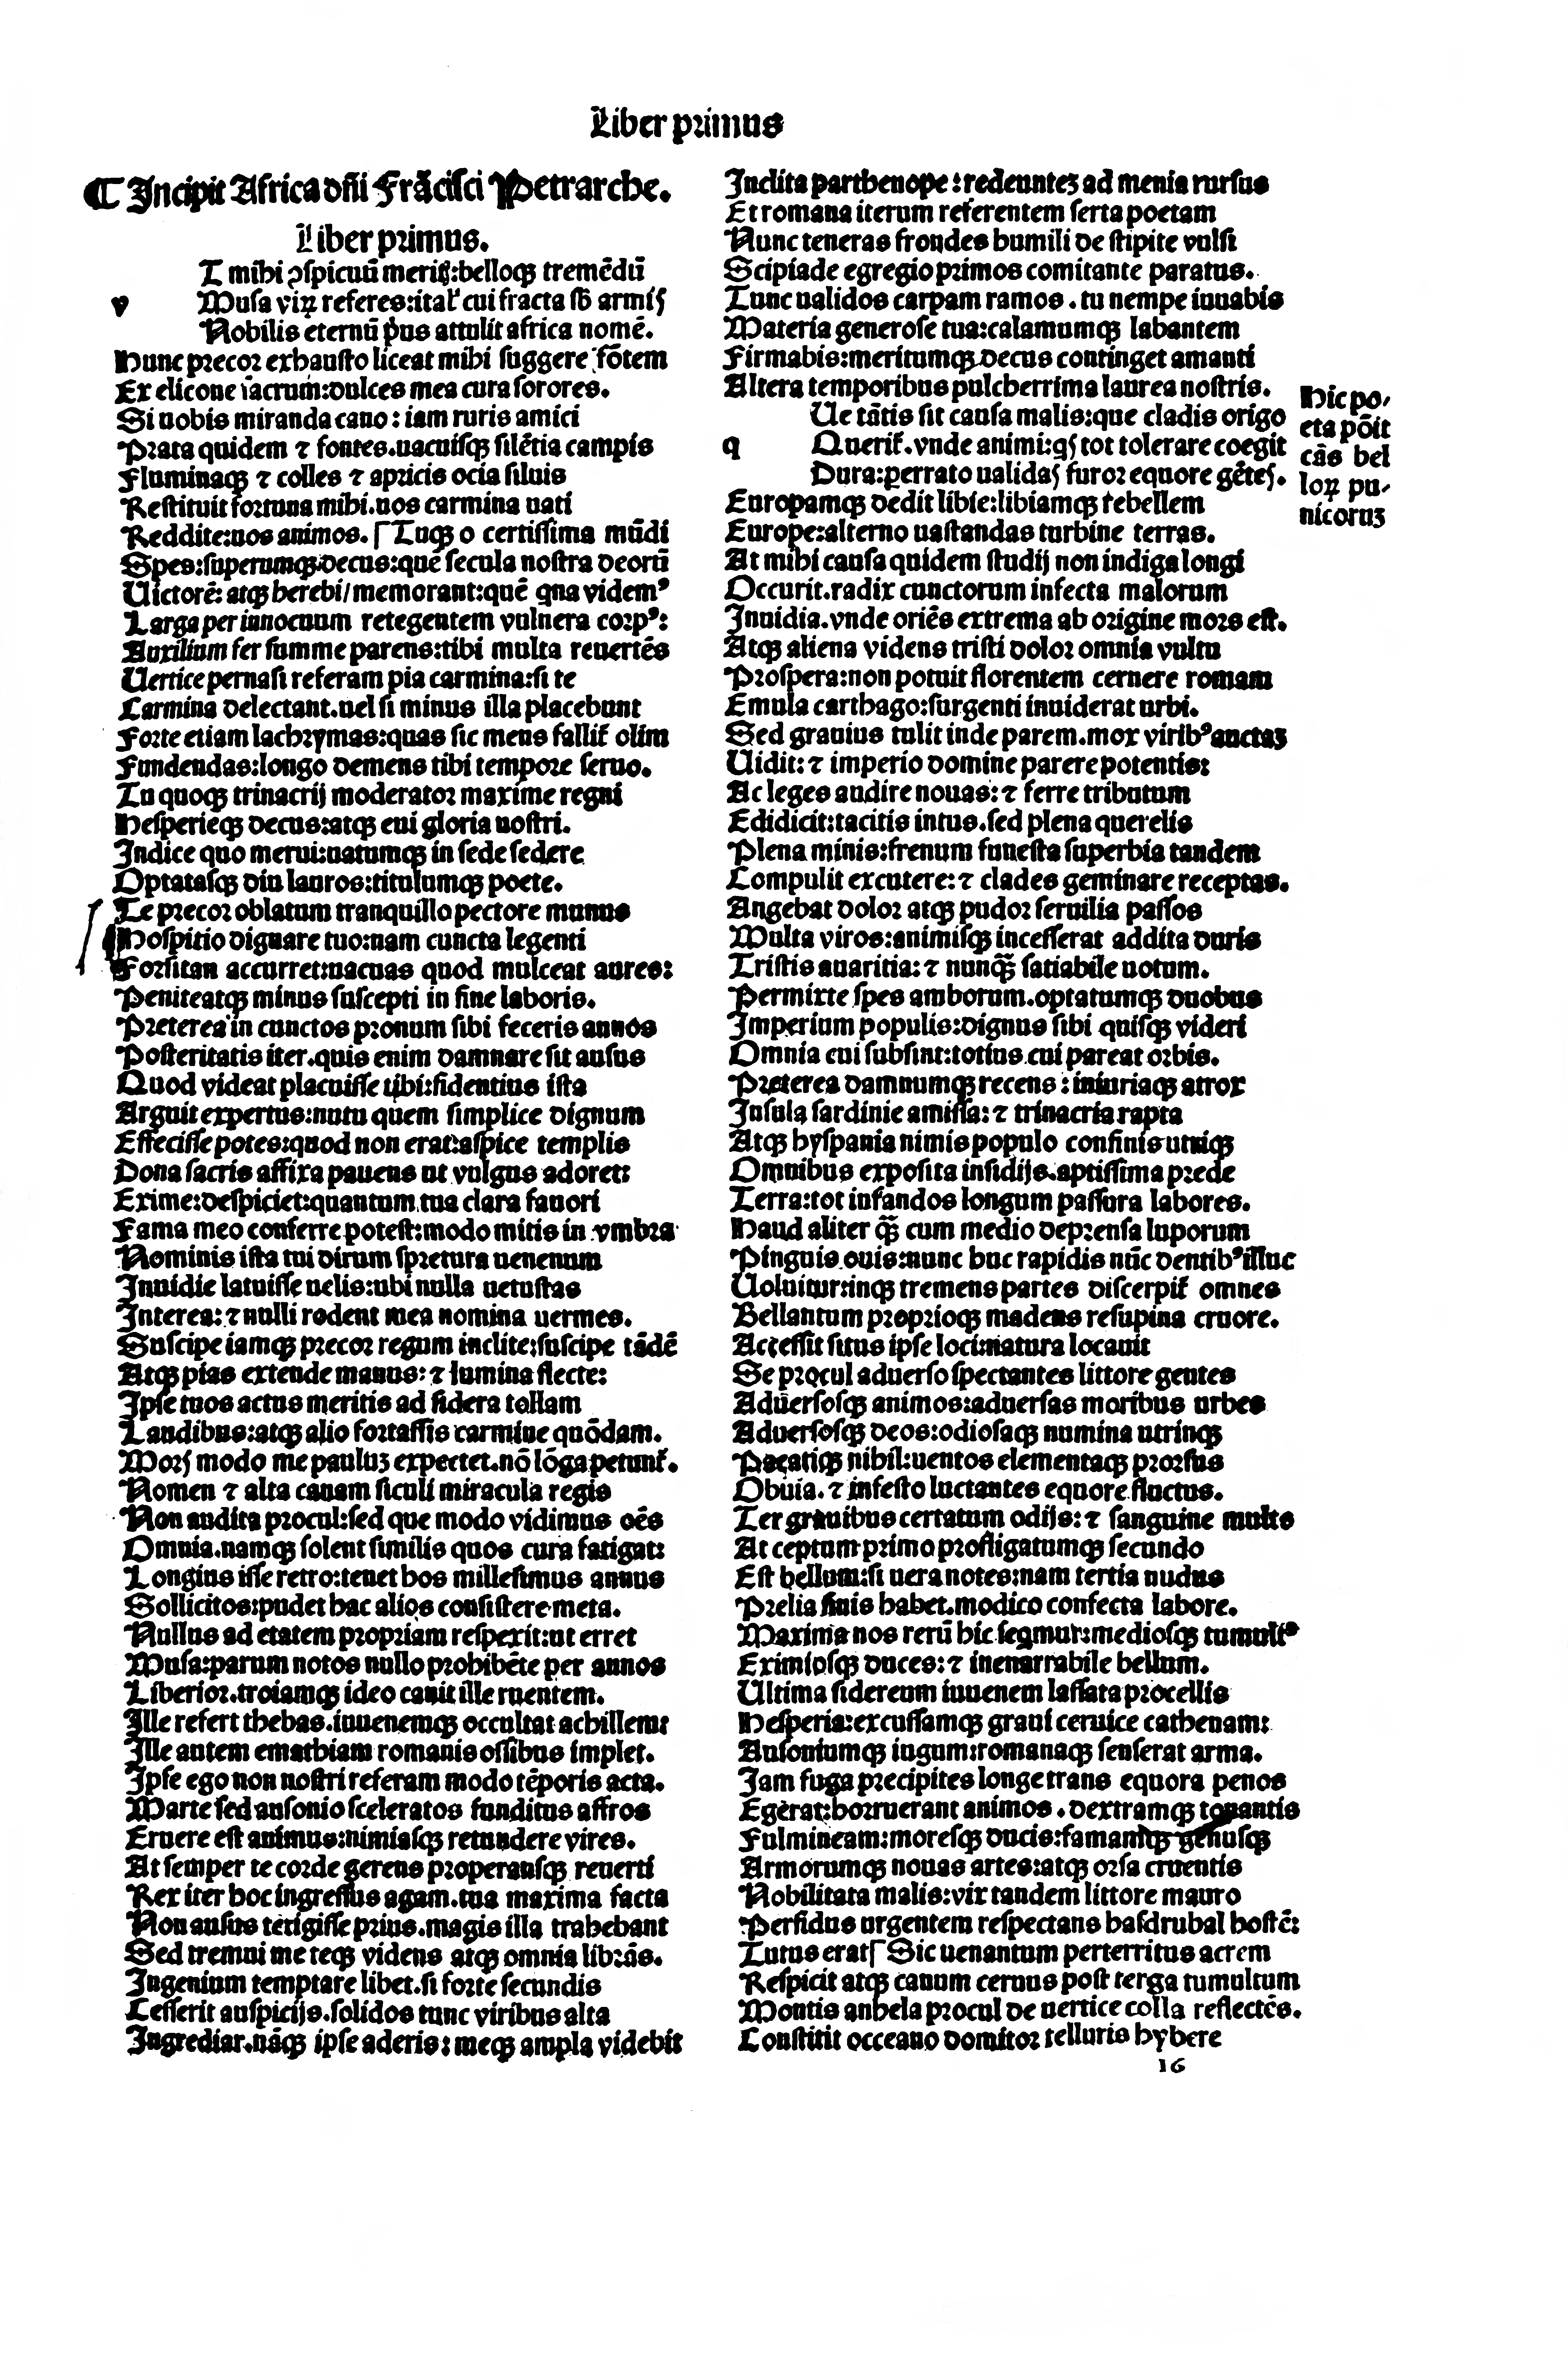 graphic relating to 30 Days Has September Poem Printable titled Africa (Petrarch) - Wikipedia